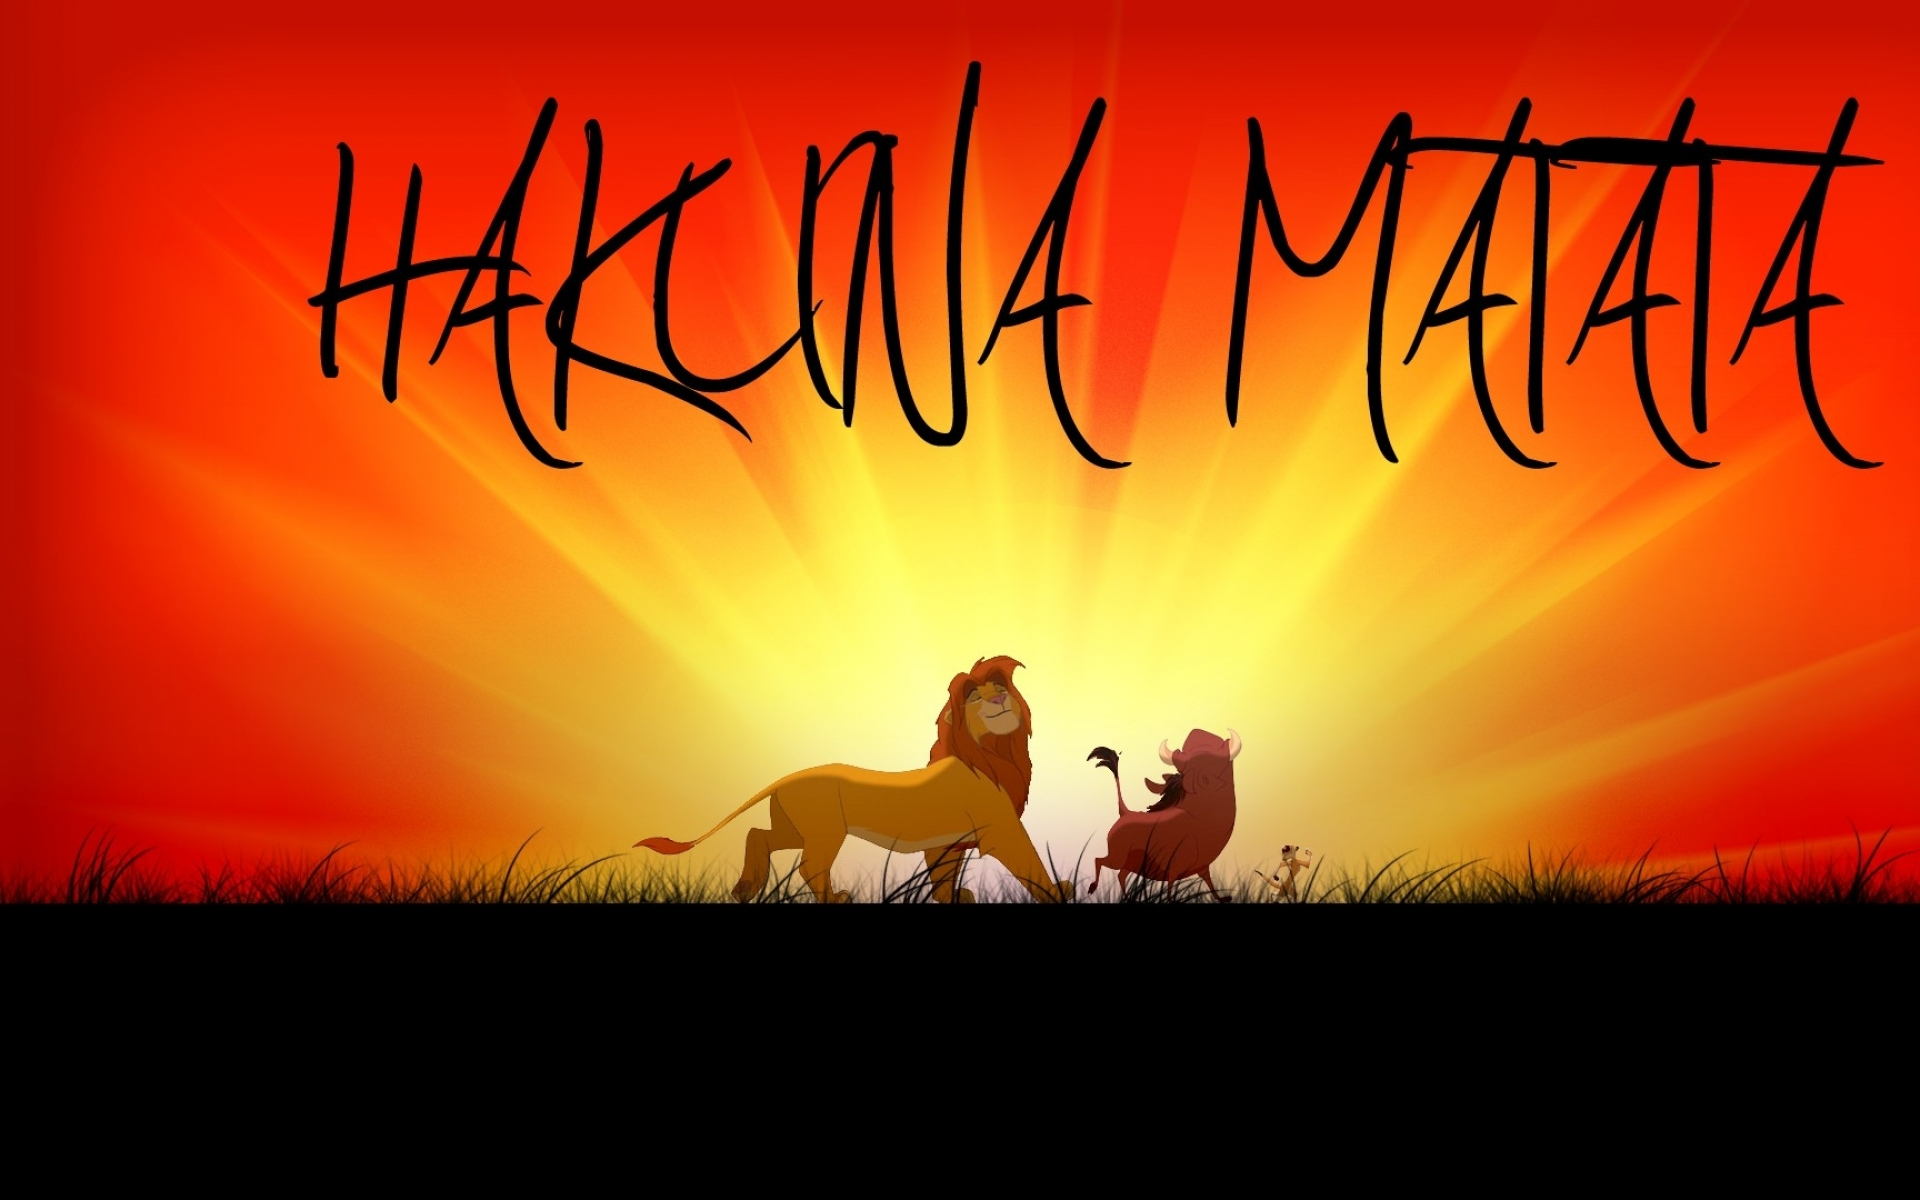 hakuna matata no worries 1920x1080 wallpaper Art HD Wallpaper download 1920x1200